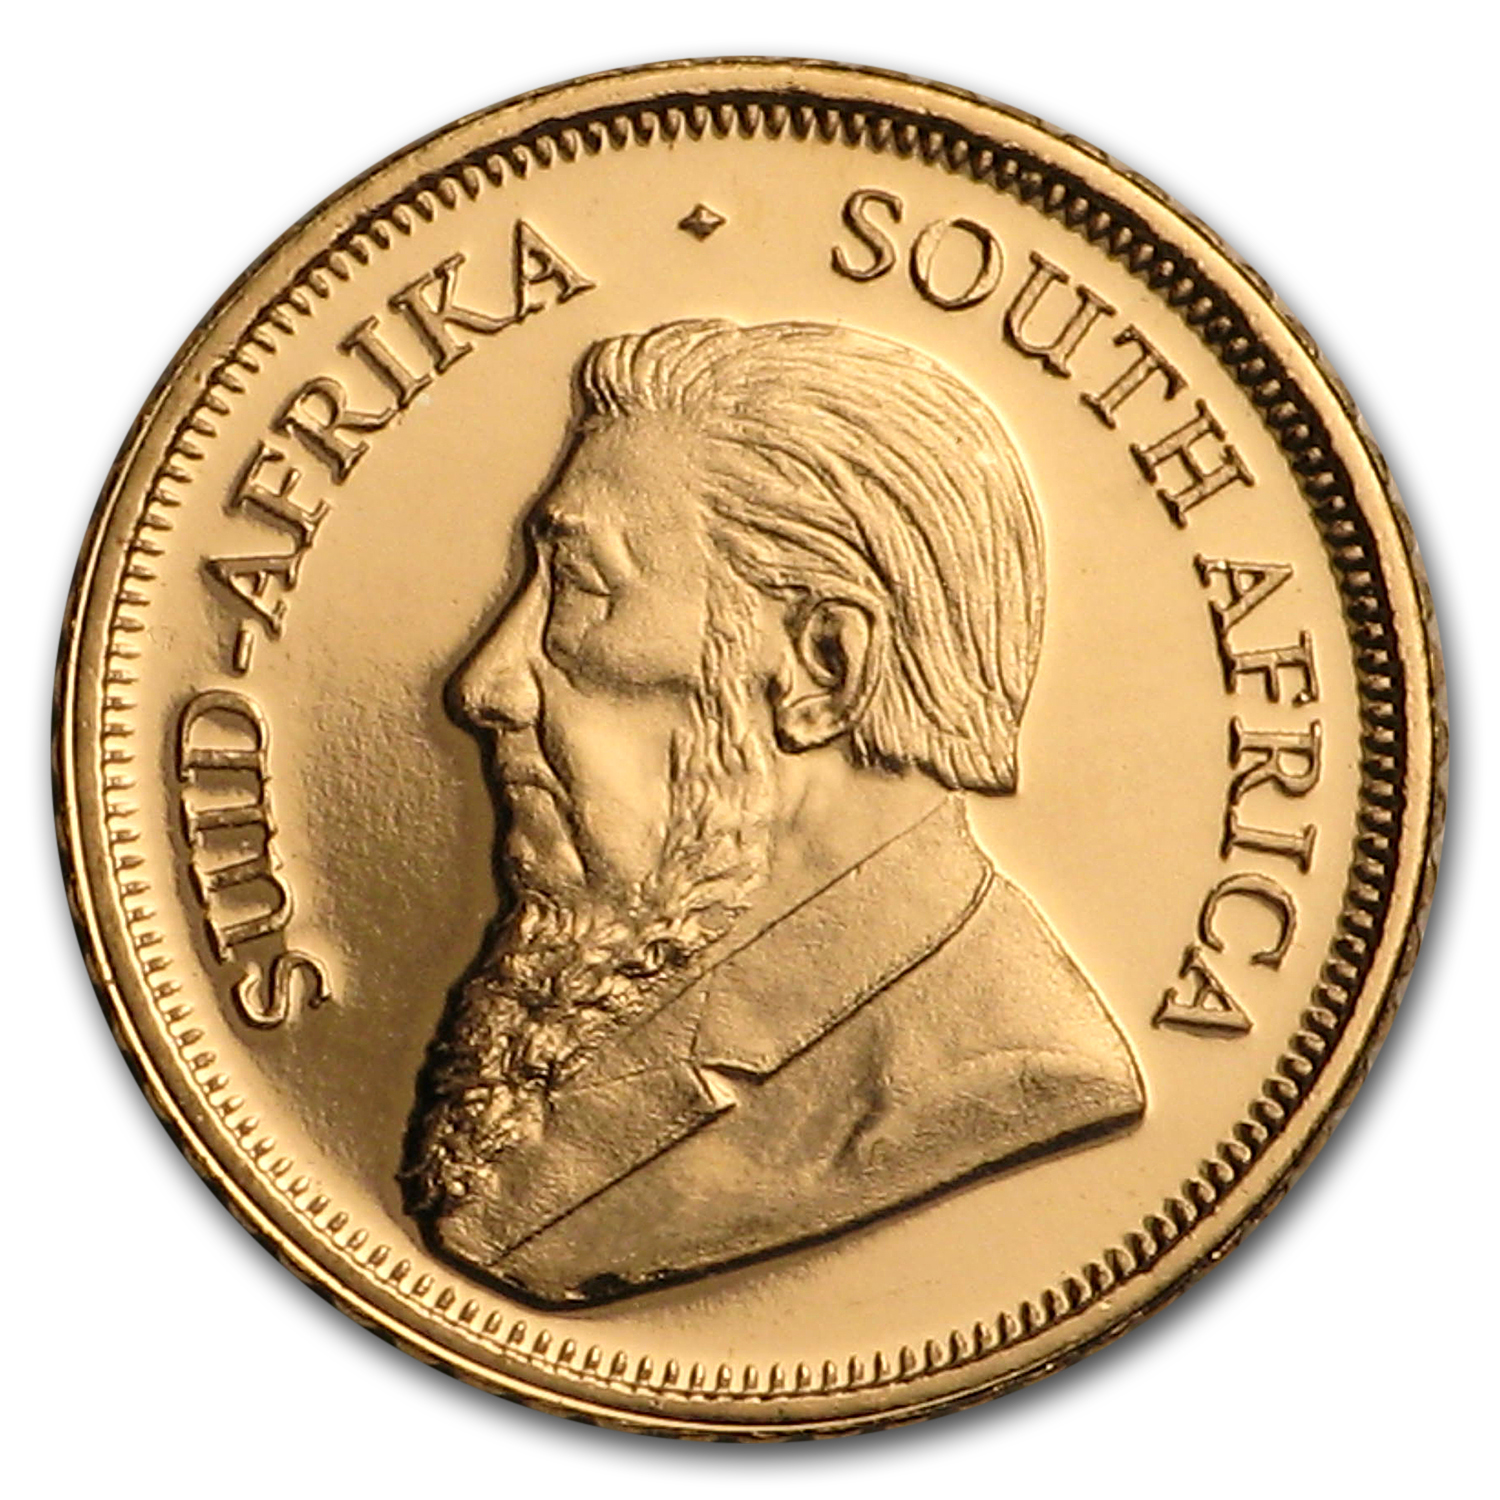 2017 South Africa 1/50 oz Proof Gold Krugerrand